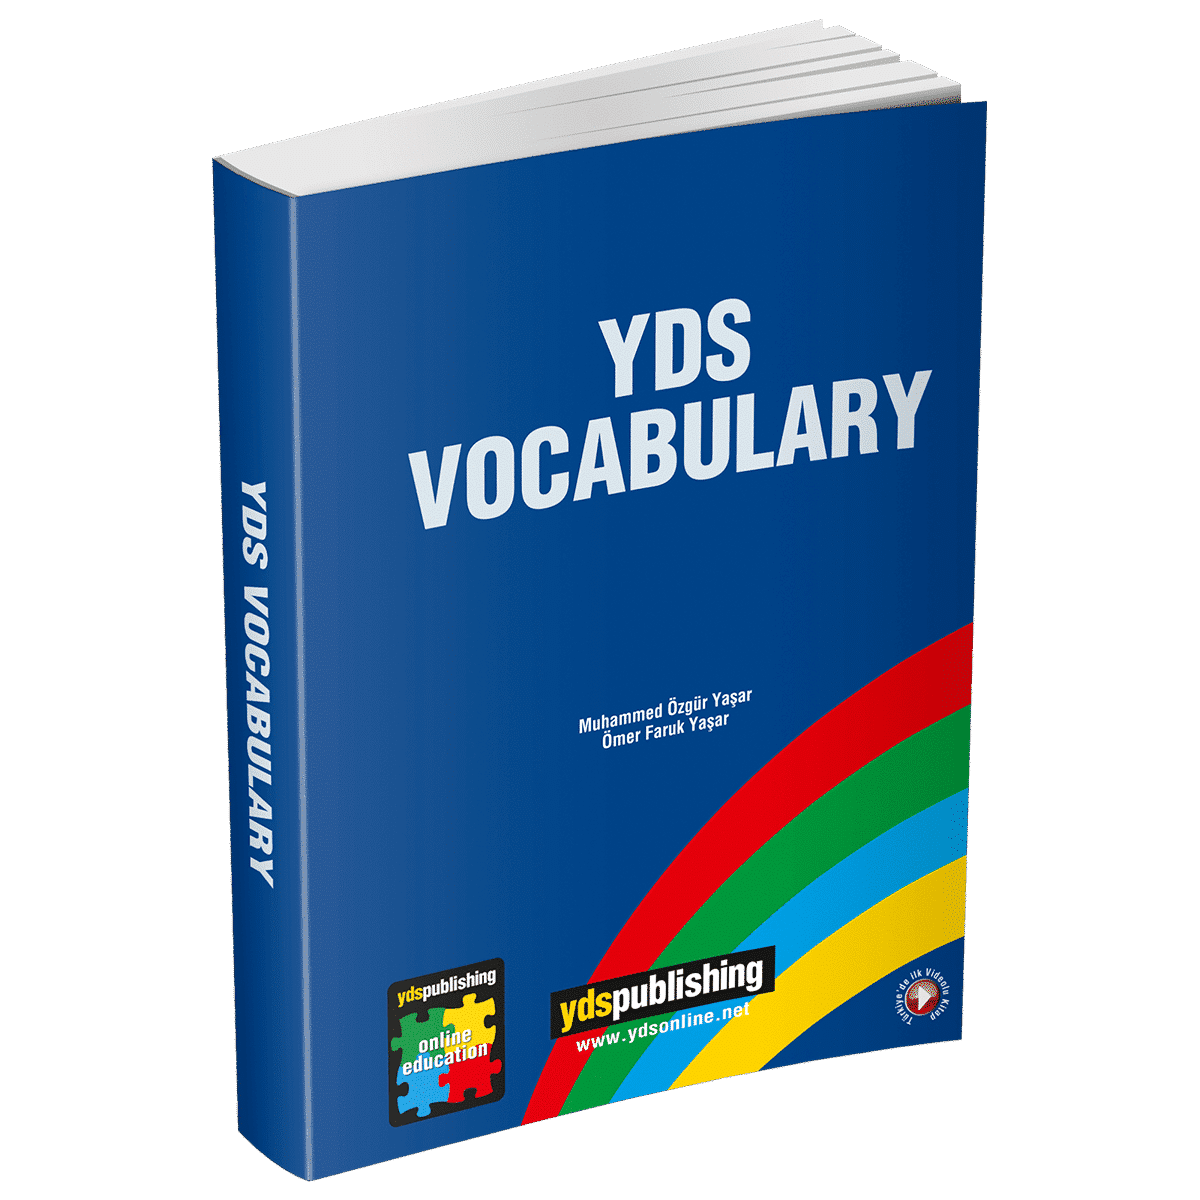 YDS Vocabulary yds vocabulary YDS Vocabulary – YDS, YKS-DİL, YÖKDİL'in anahtarı bu kelime kitabında yds vocabulary 001 min 1200x1200